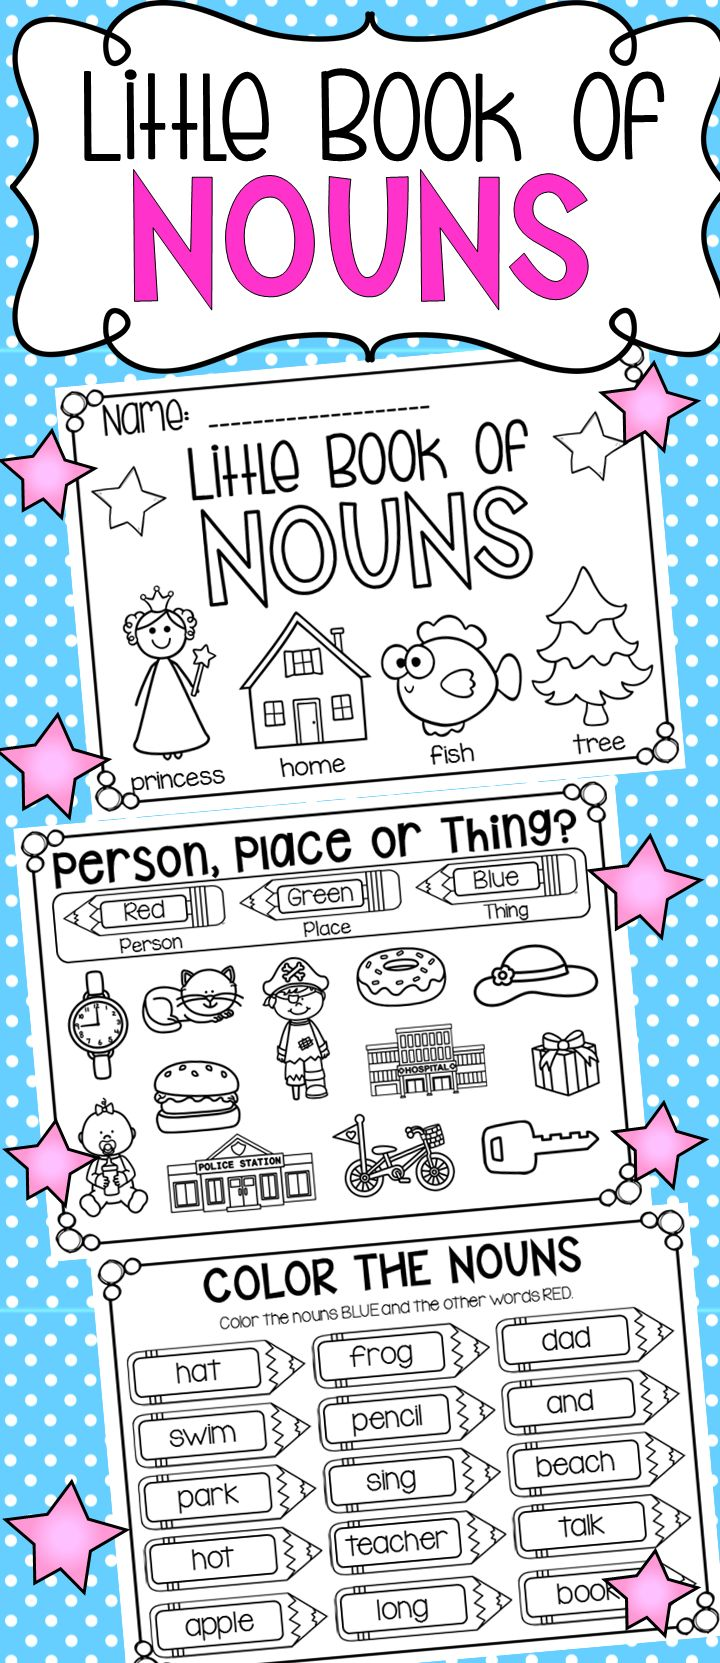 Little Book of Nouns to accompany my nouns unit. It is a half-page a5 booklet which is 17 pages long. I have used it in SO many ways – It was used during literacy rotations, as a fast finisher activity and during whole-class lessons. It was great and really helped to reinforce what we were learning about nouns. I am in the process of creating a verb one too!